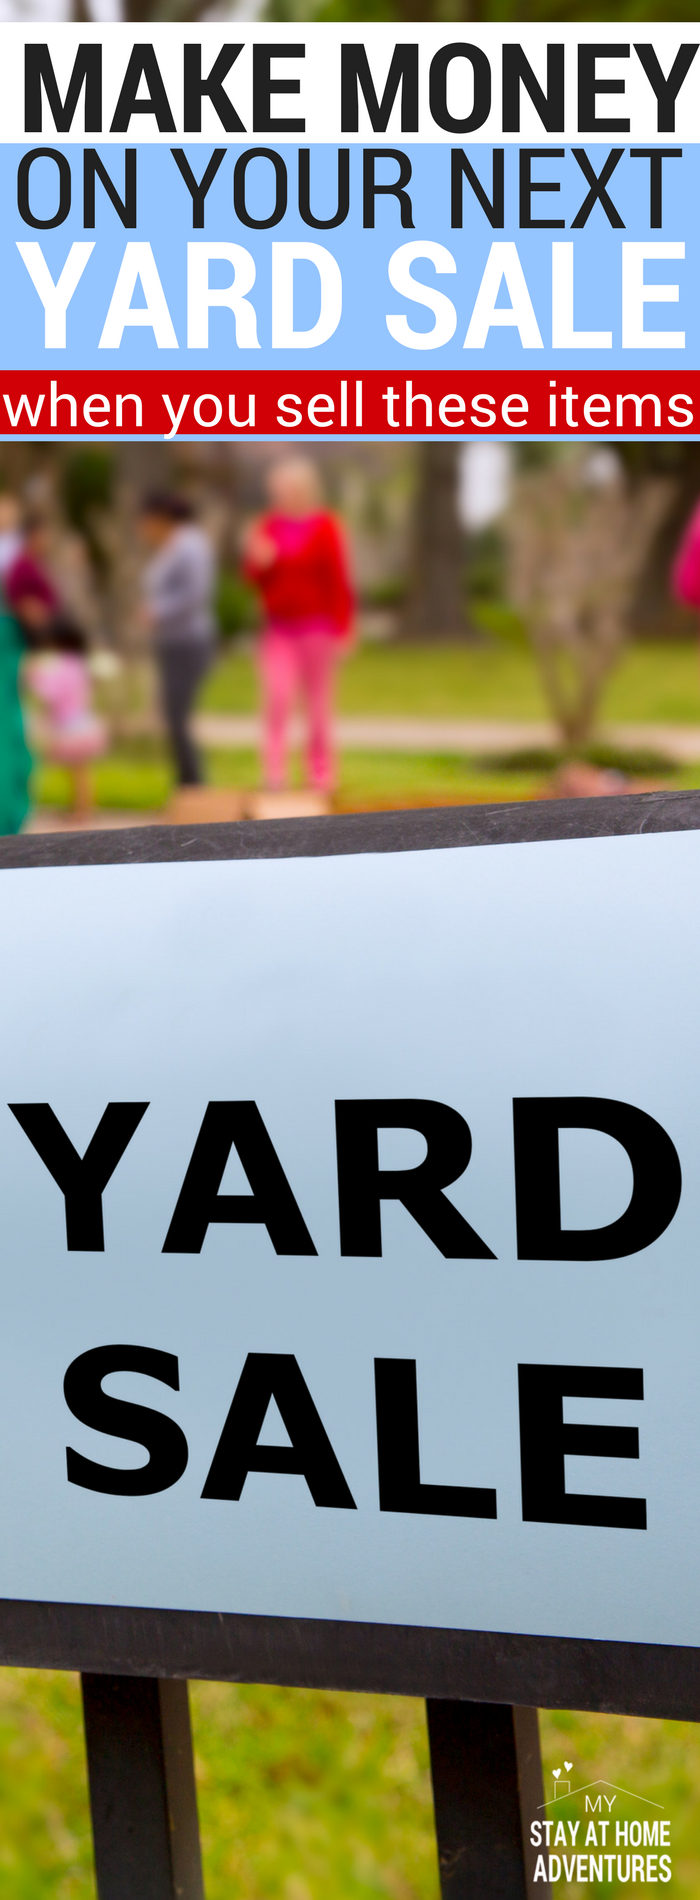 Yard sale season is here and if you want to find things that sell well at yard sales then you need to check out this list. You will learn what to sell and earn money by the next yard sale.